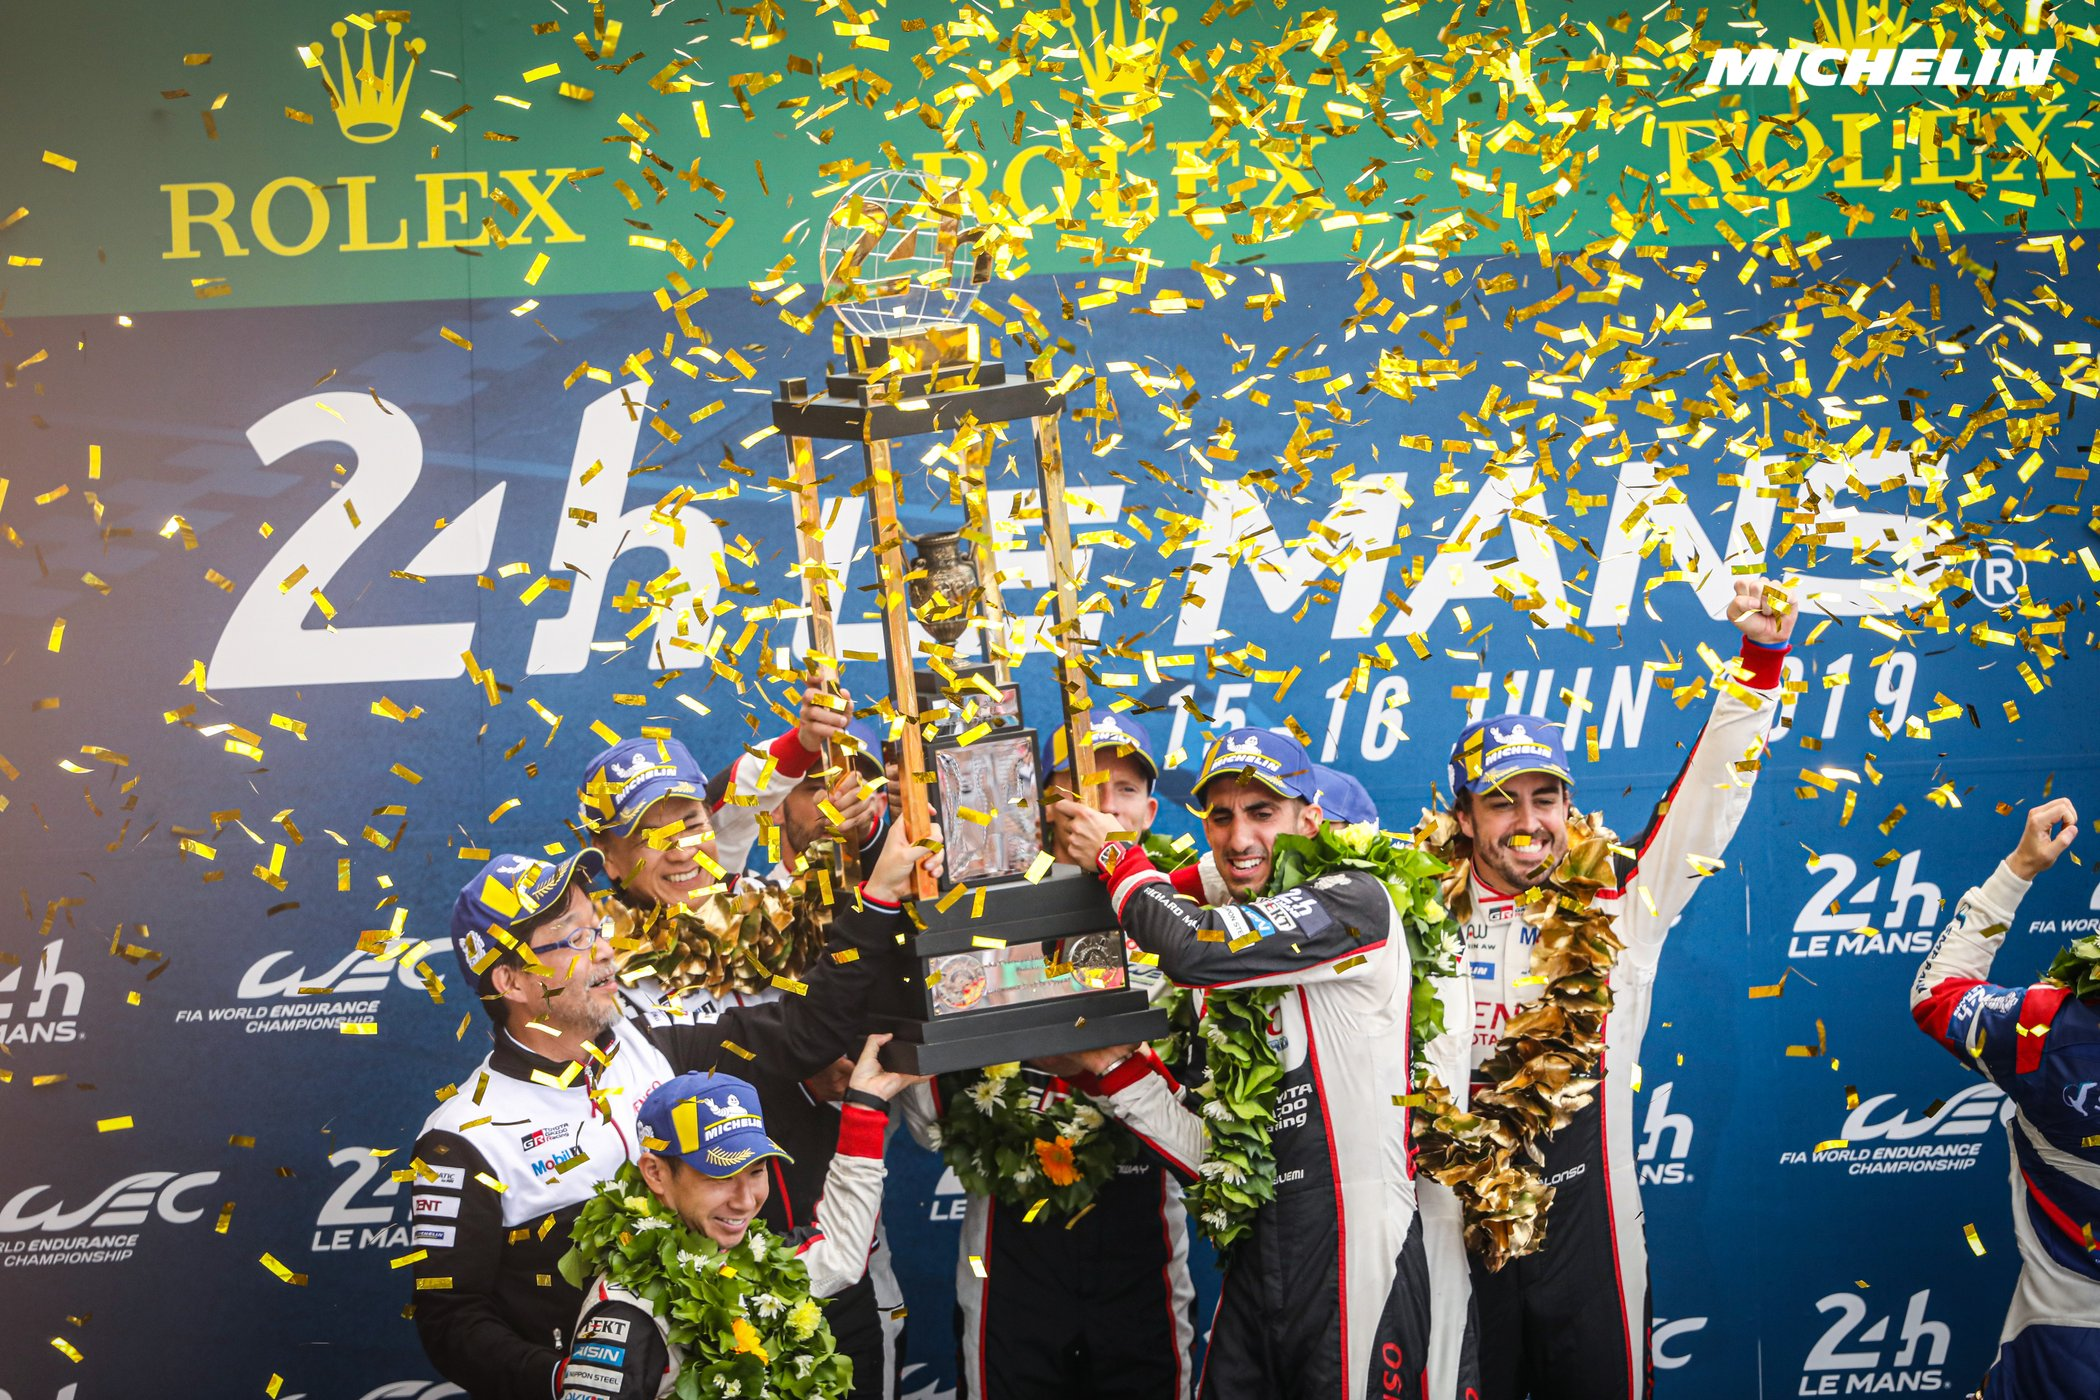 A second straight 1-2 finish for Toyota/Michelin at Le Mans